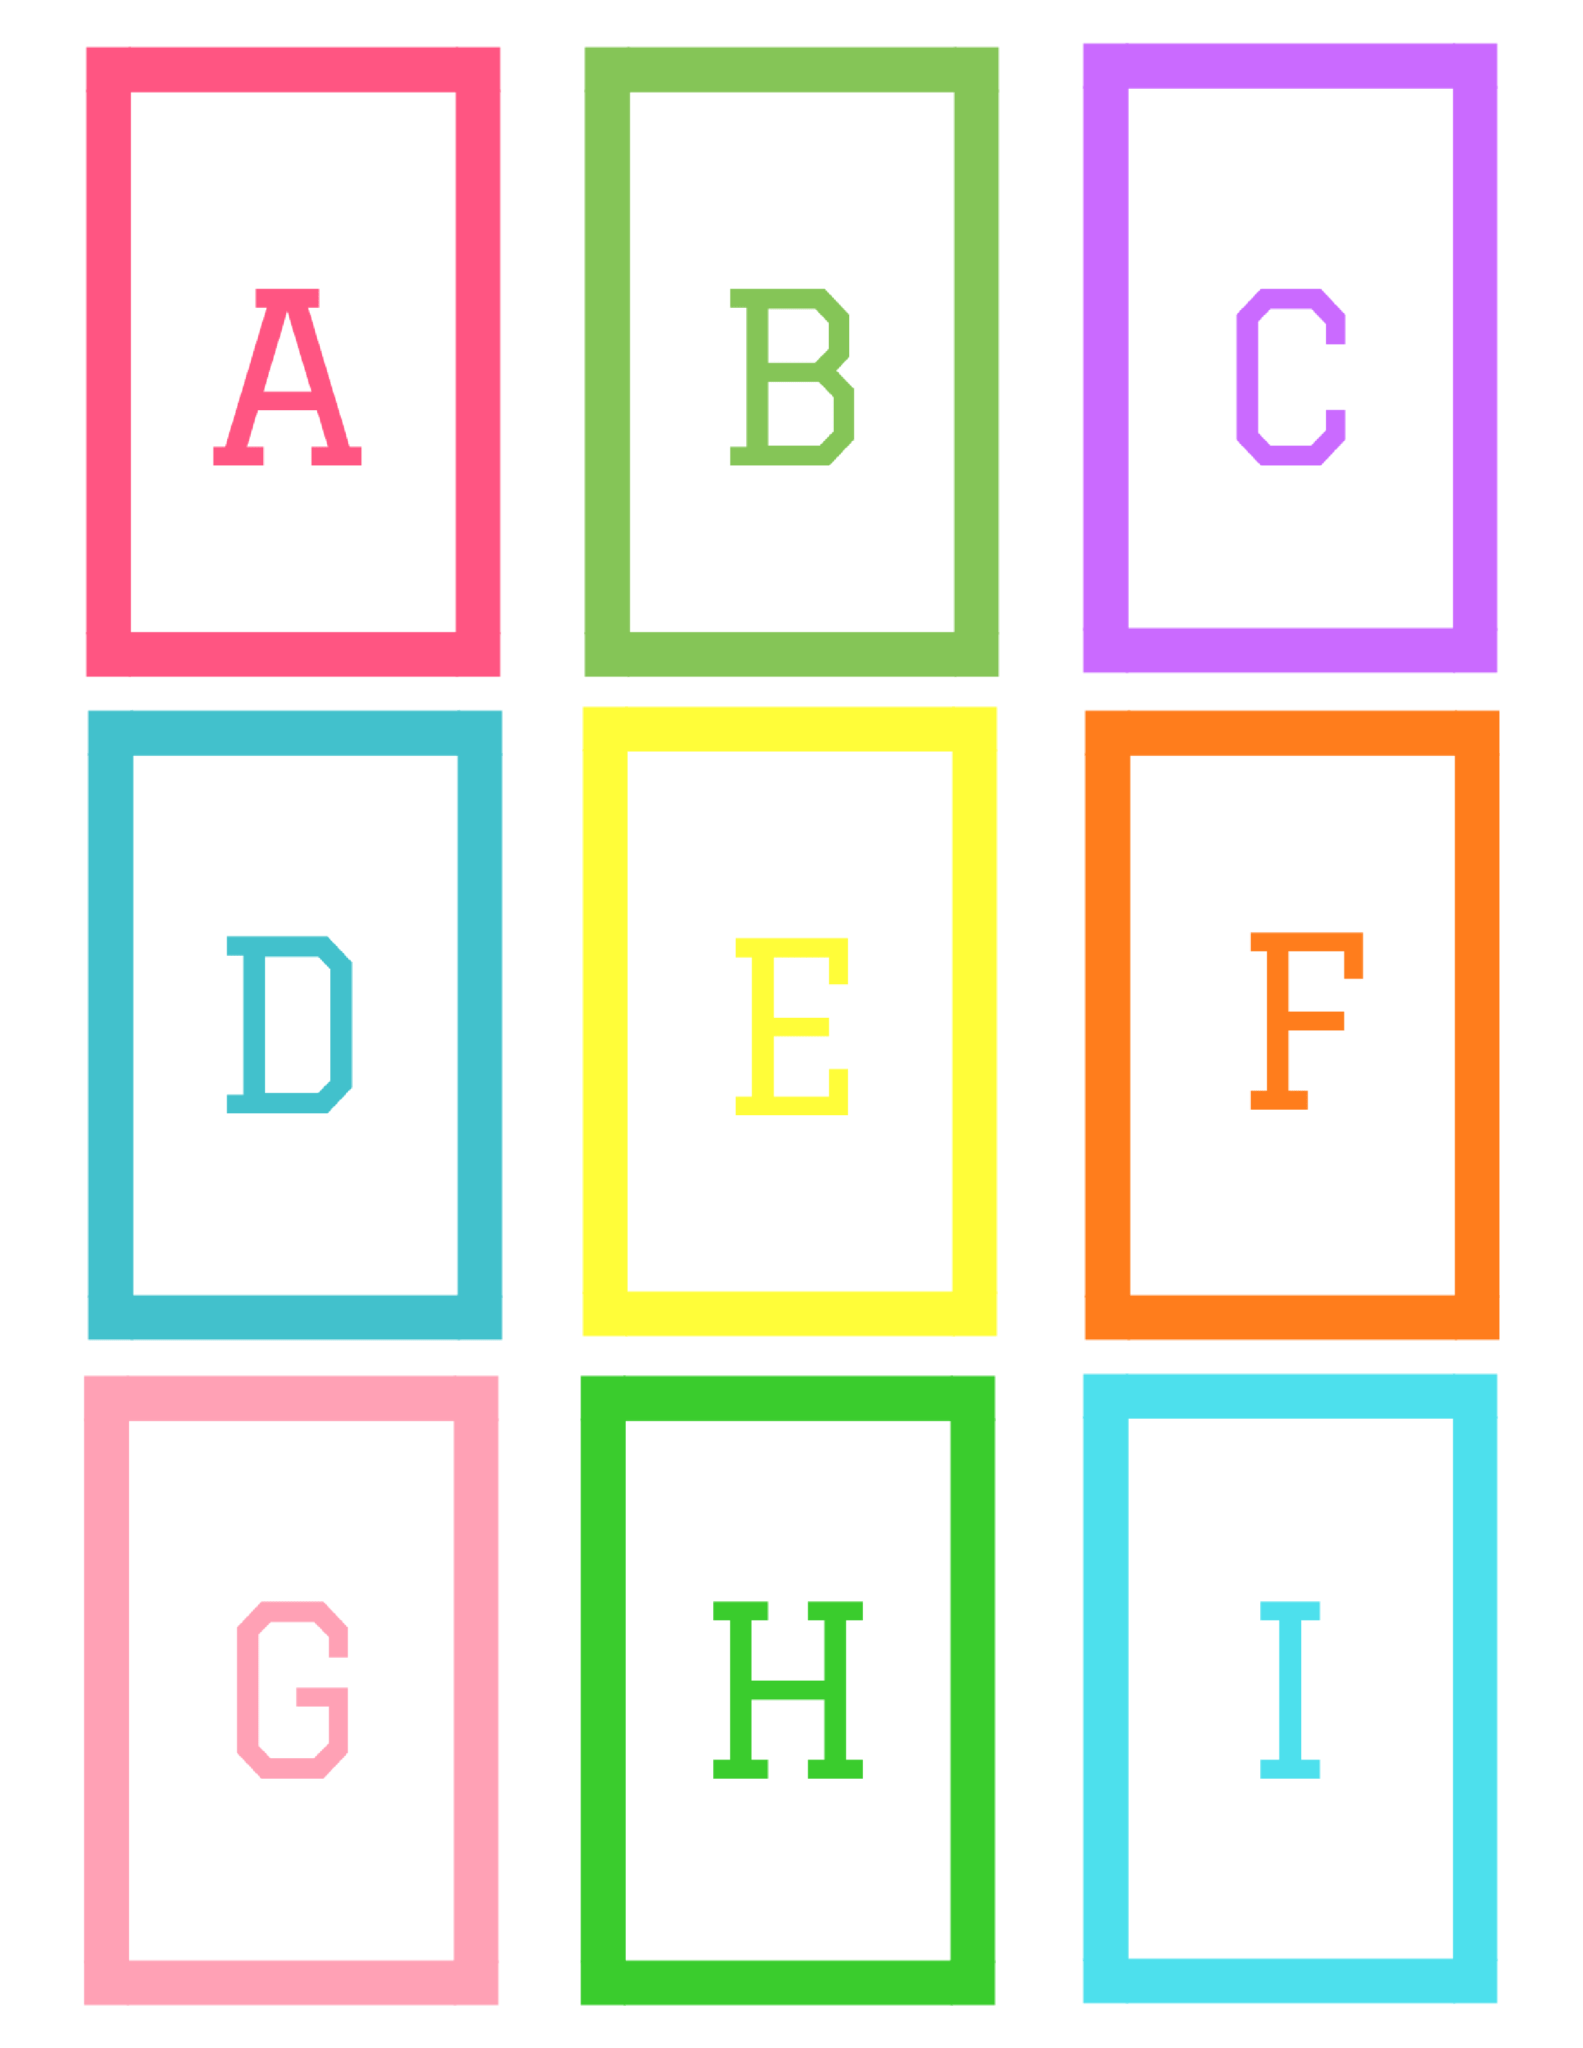 photograph relating to Abc Printable Flashcards named ABC Flashcards: Absolutely free Printable - Uncomplicated Mother Assessment